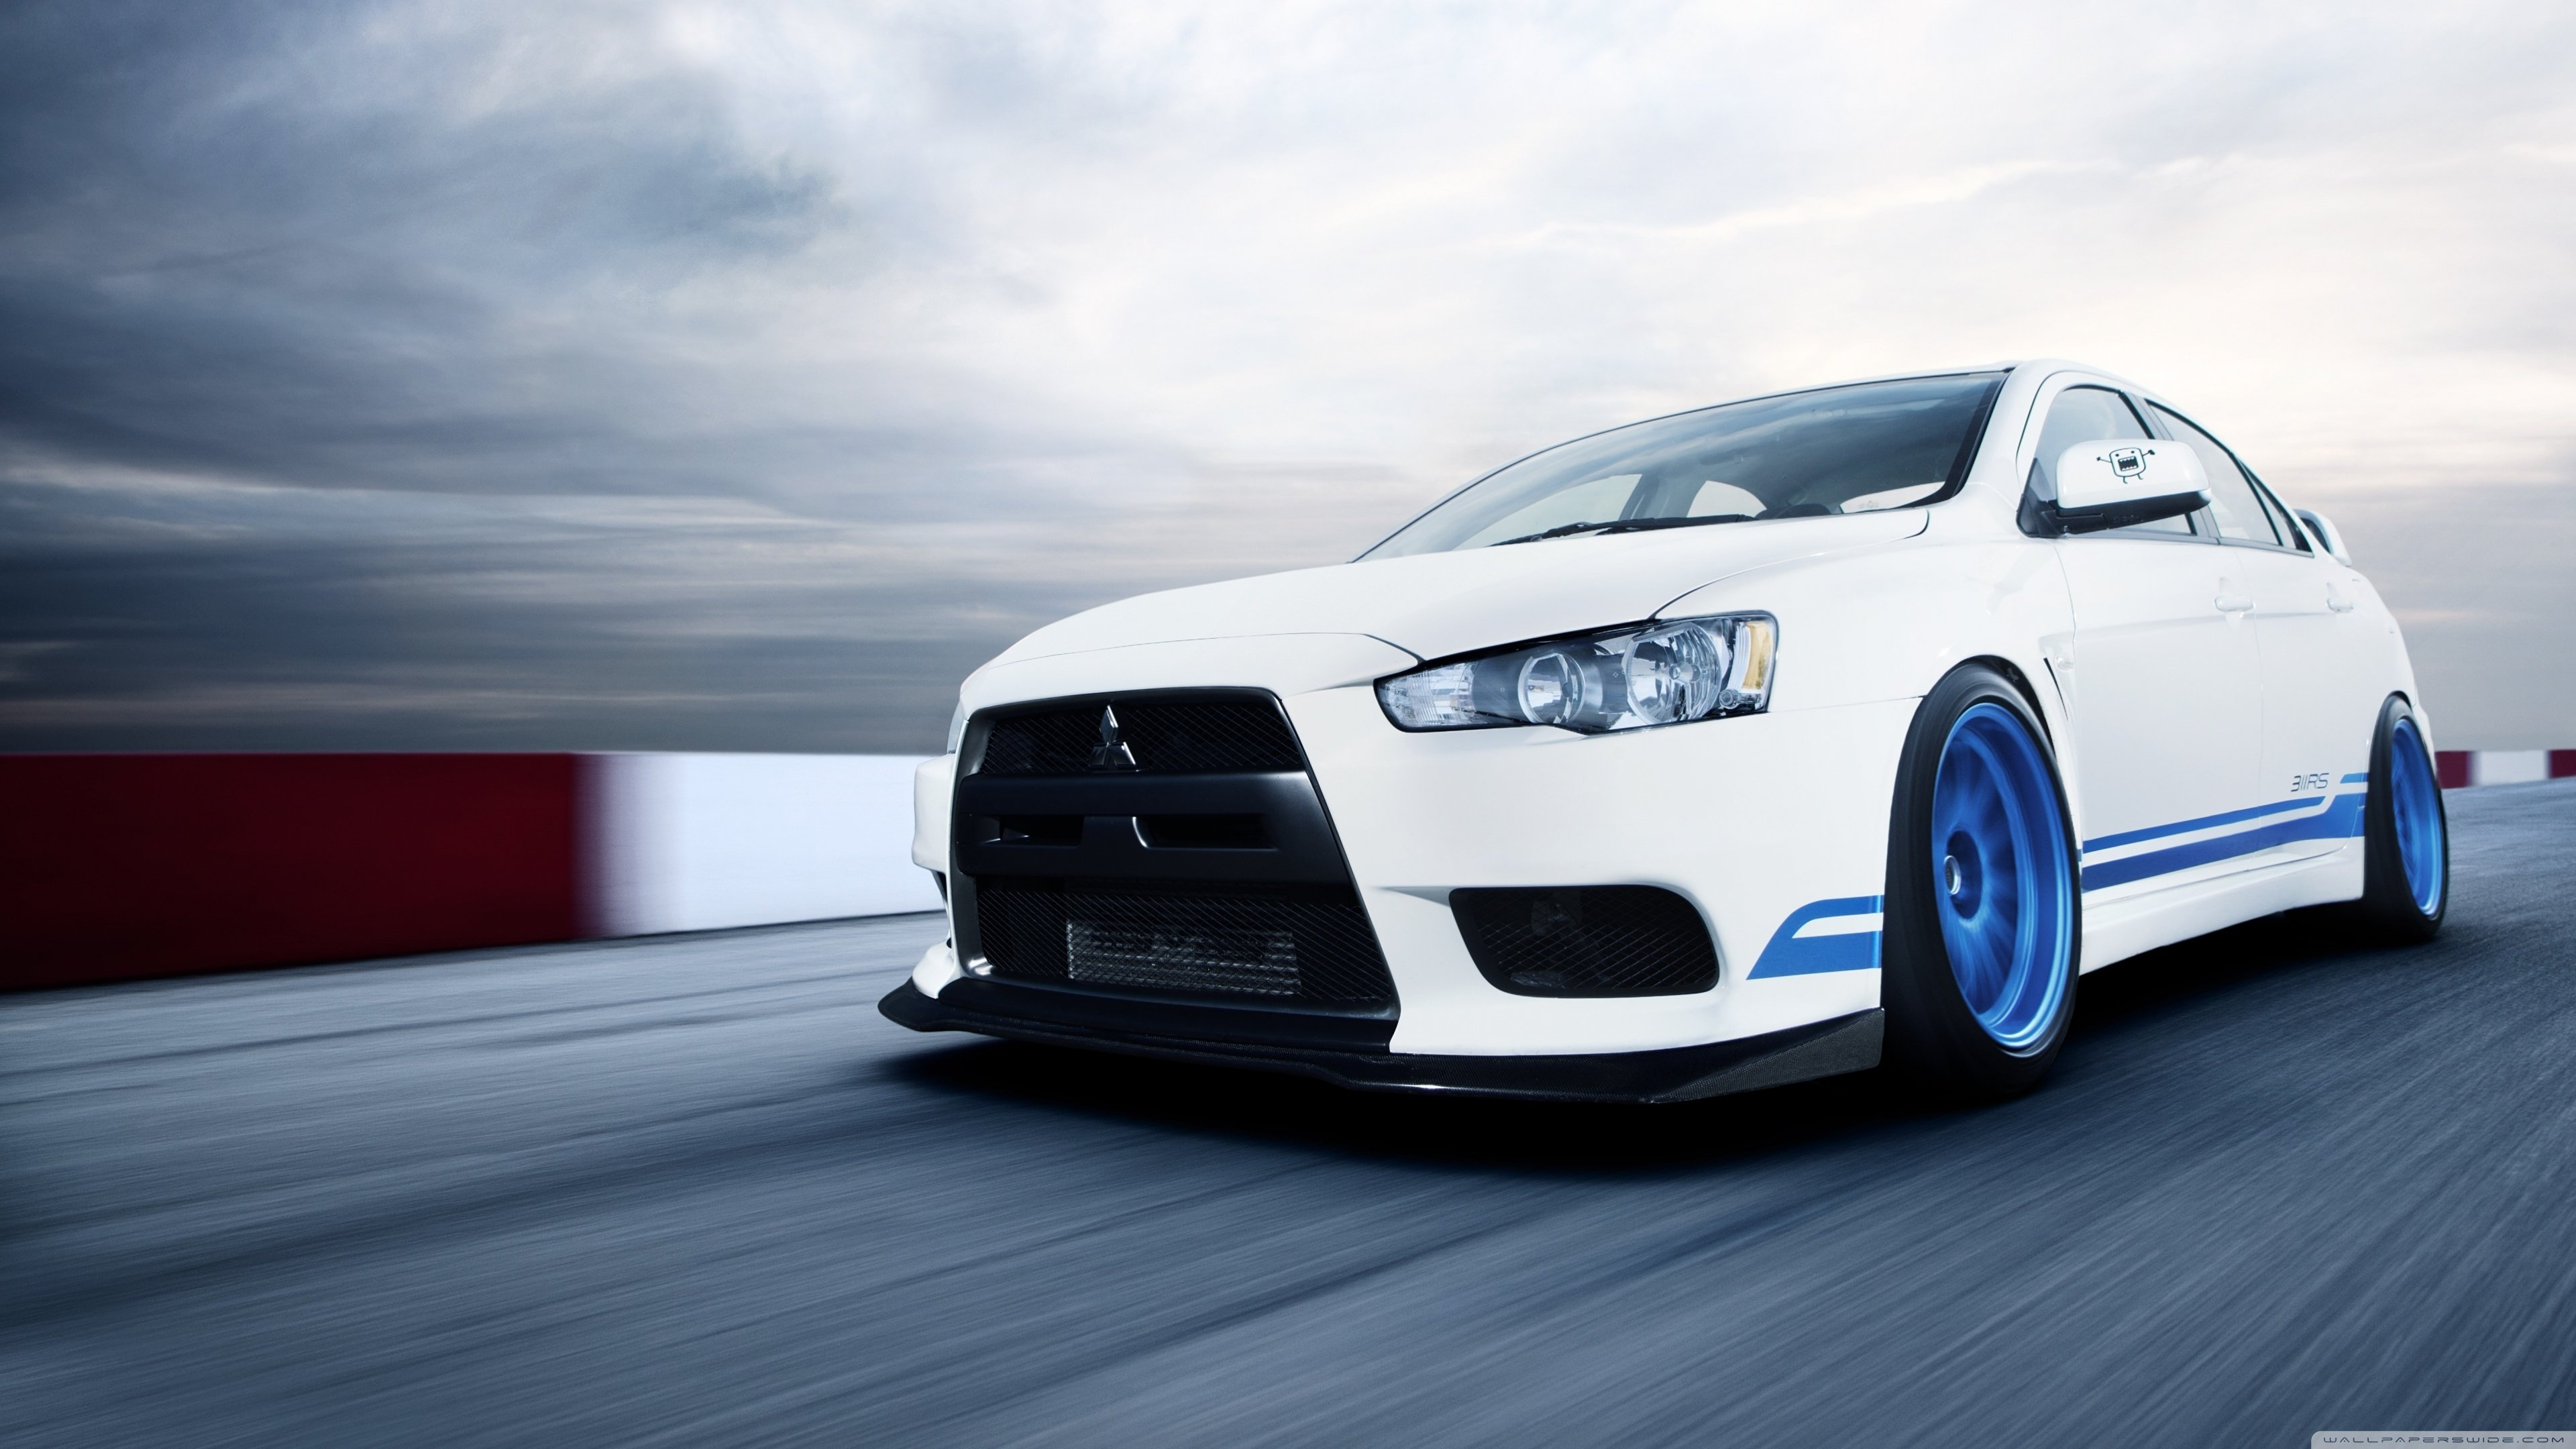 Aircraft military vehicles Mitsubishi Lancer Mitsubishi Evo 3840x2160